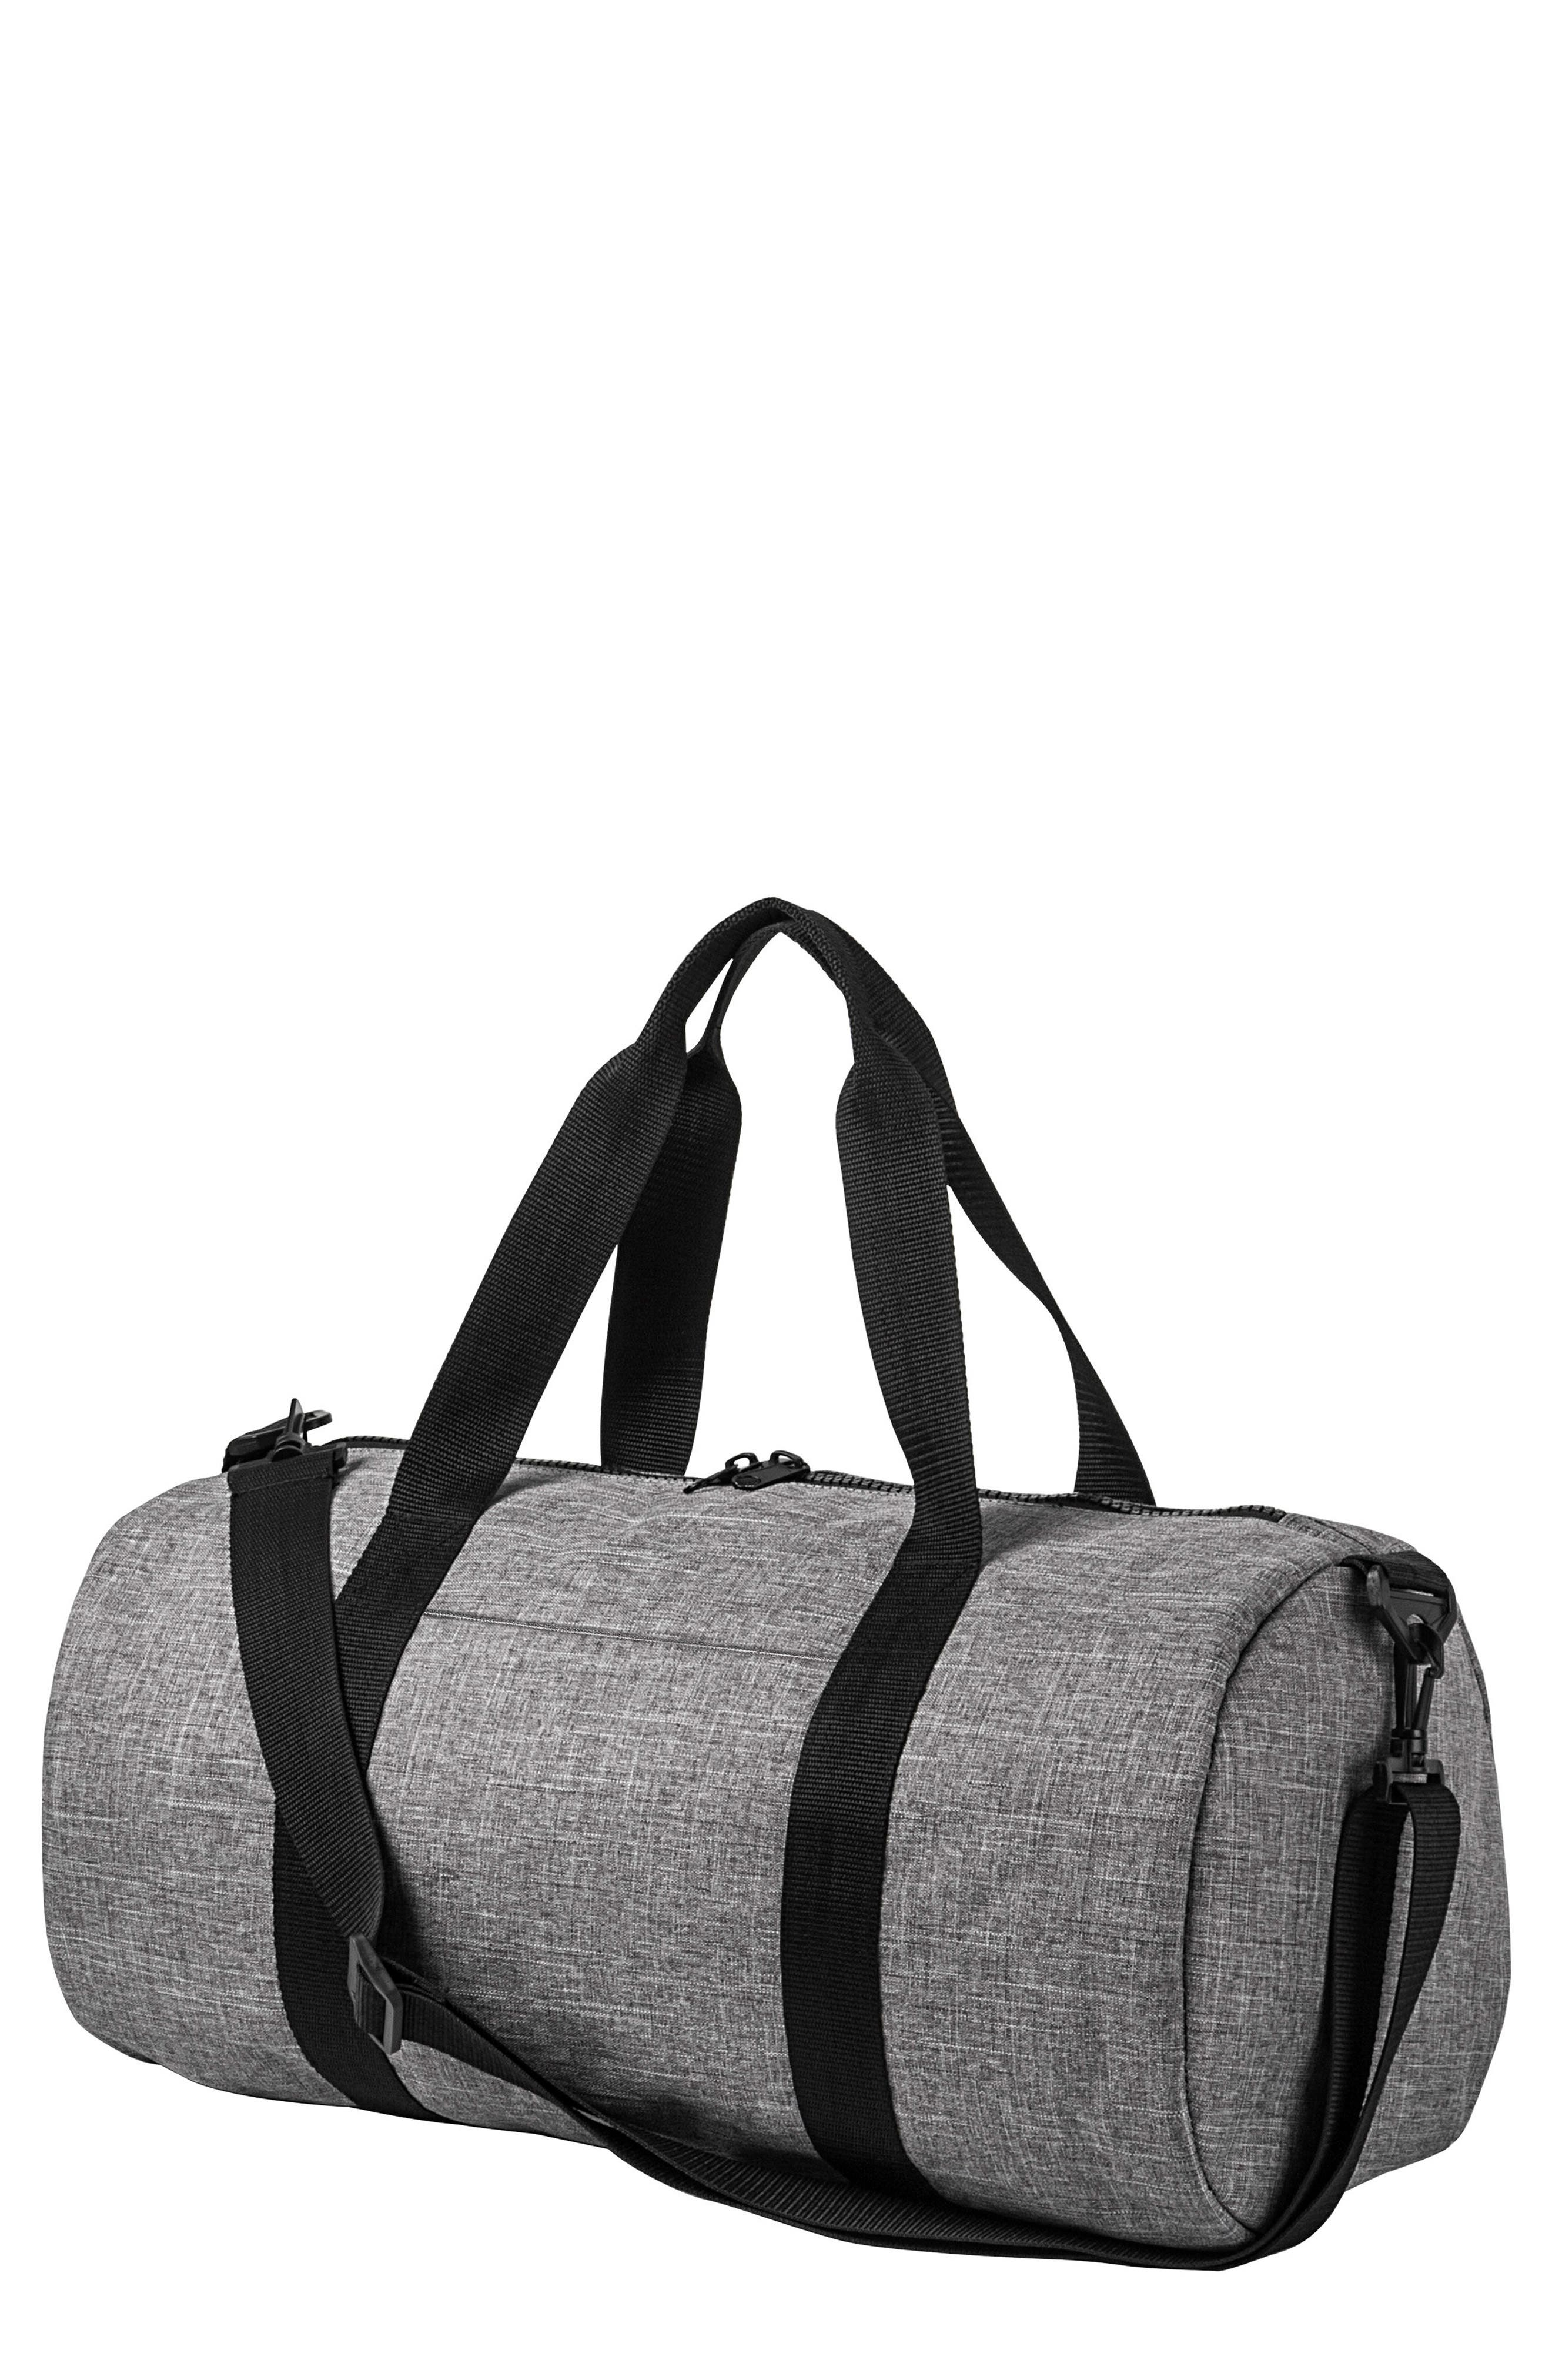 Monogram Duffel Bag,                             Main thumbnail 1, color,                             GREY